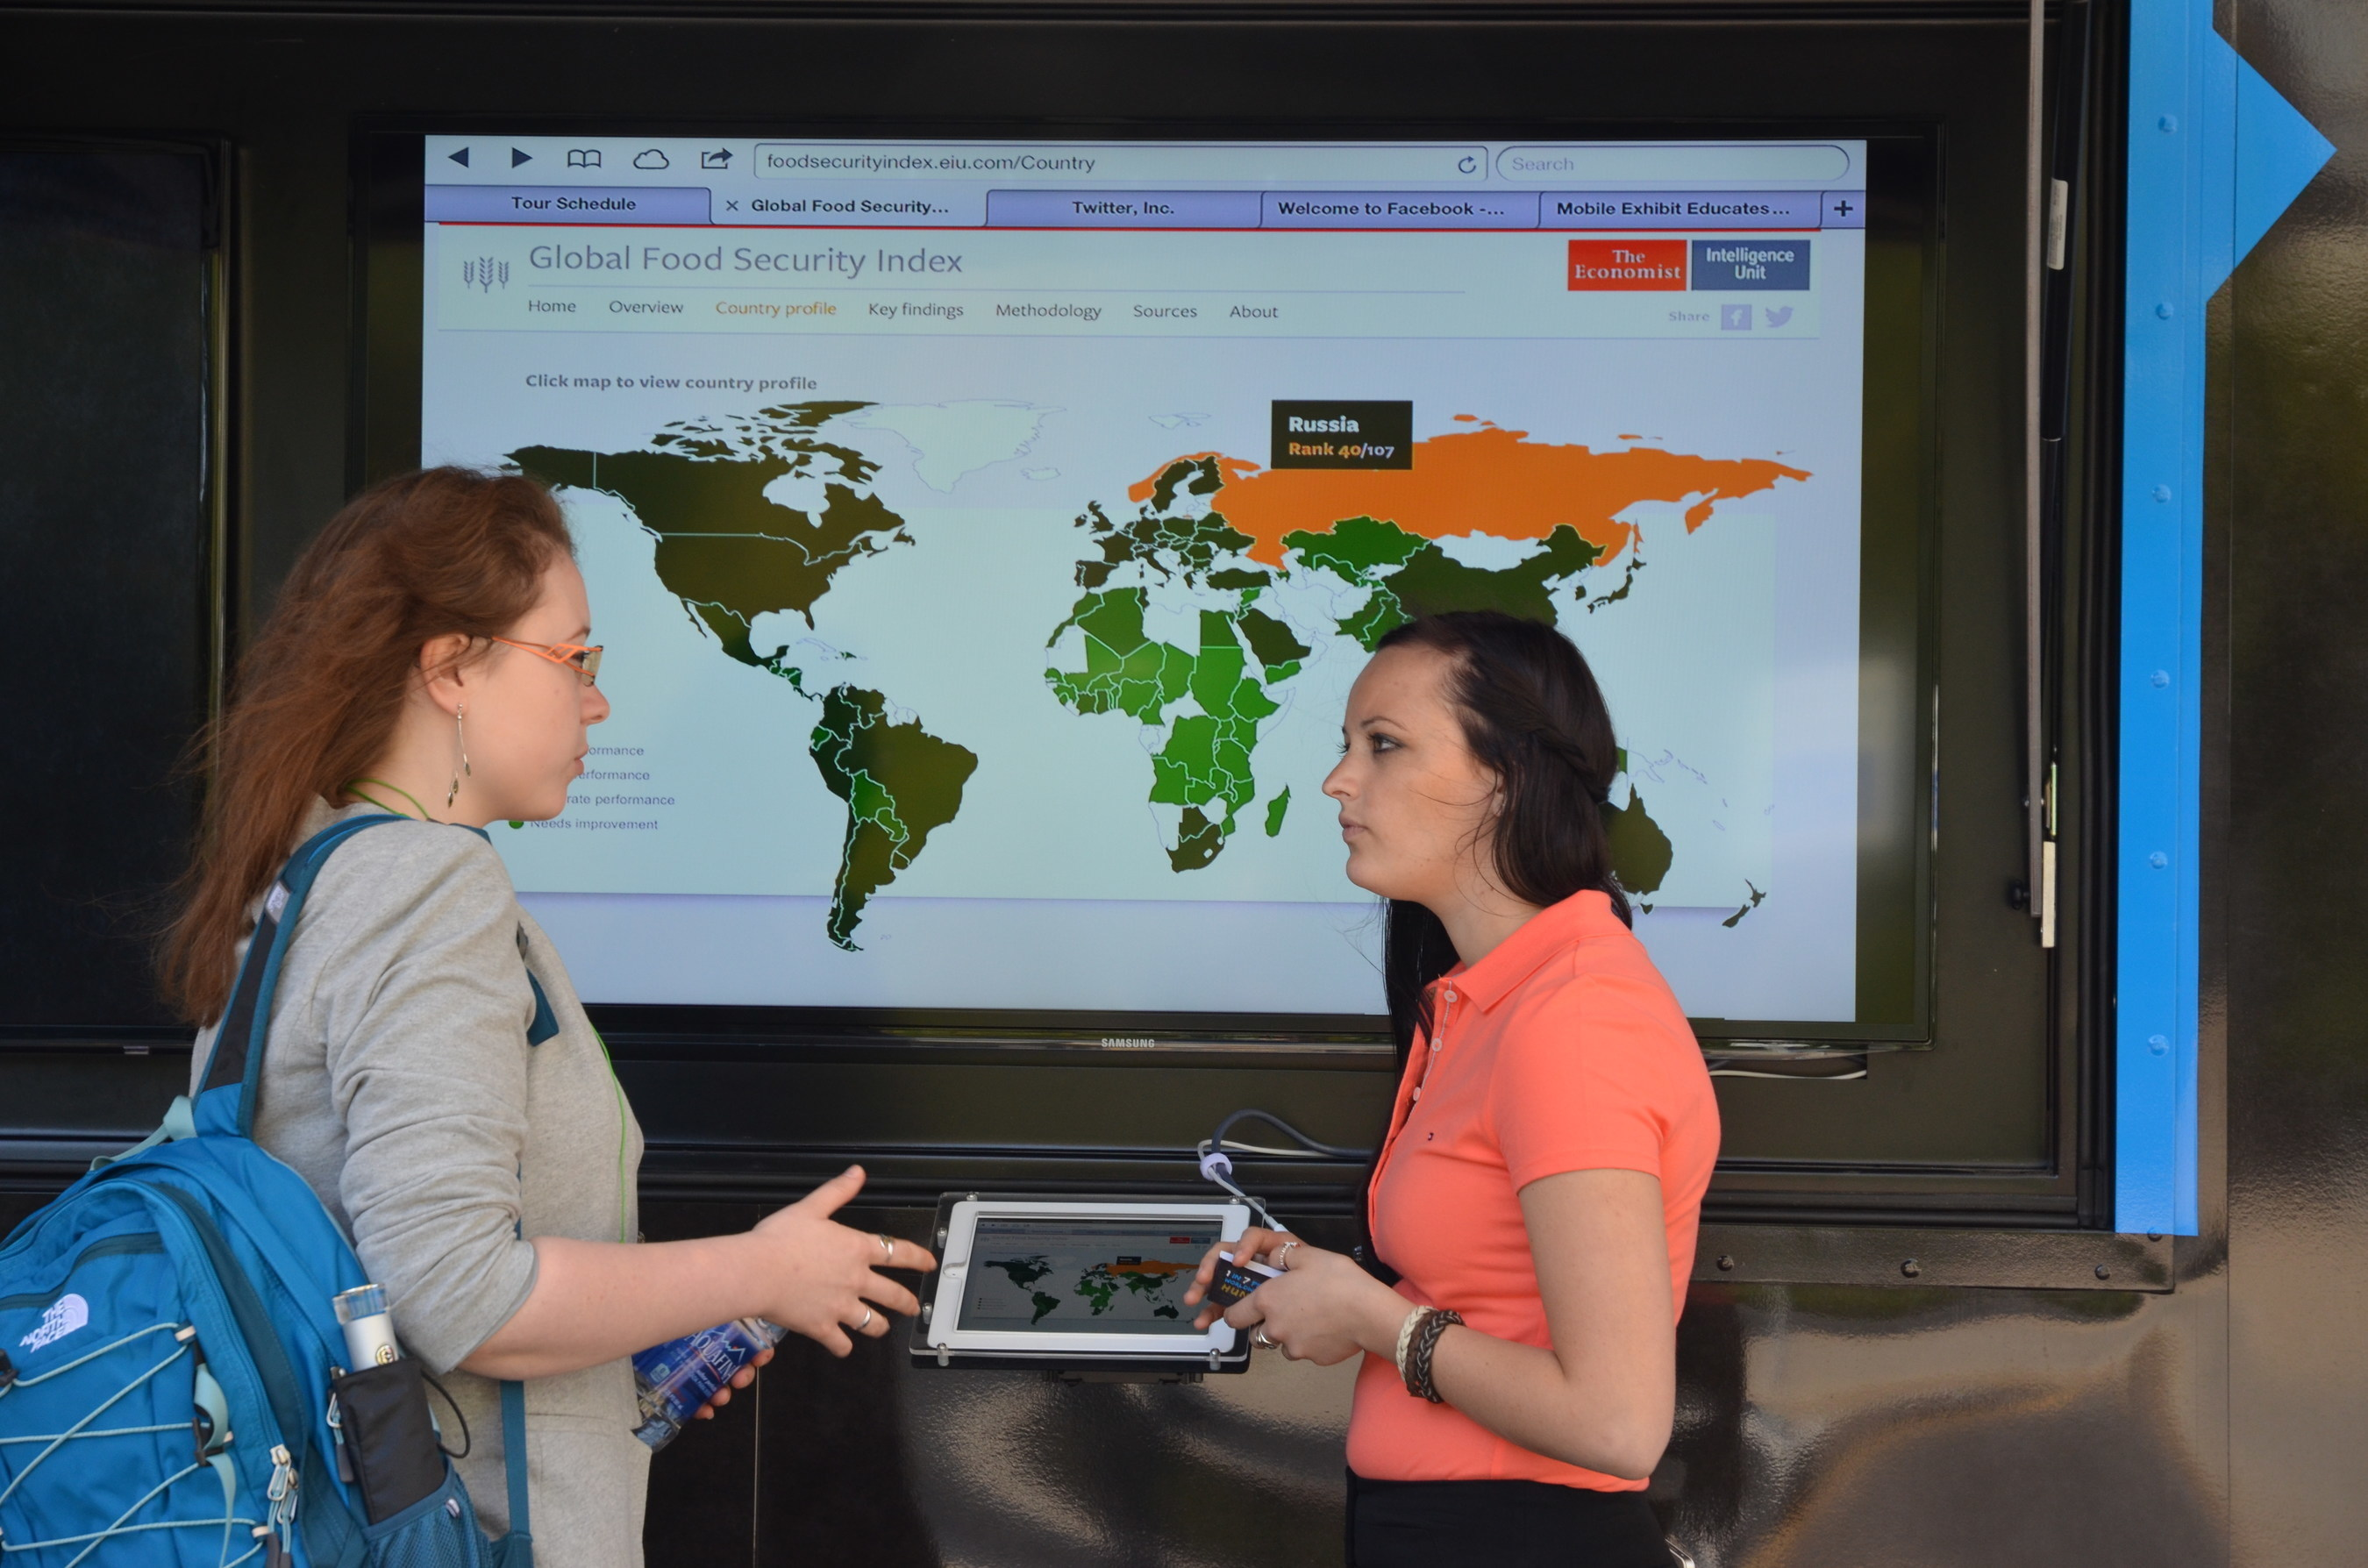 HungerU encourages visitors to learn through interactive displays like the Global Food Security Index.